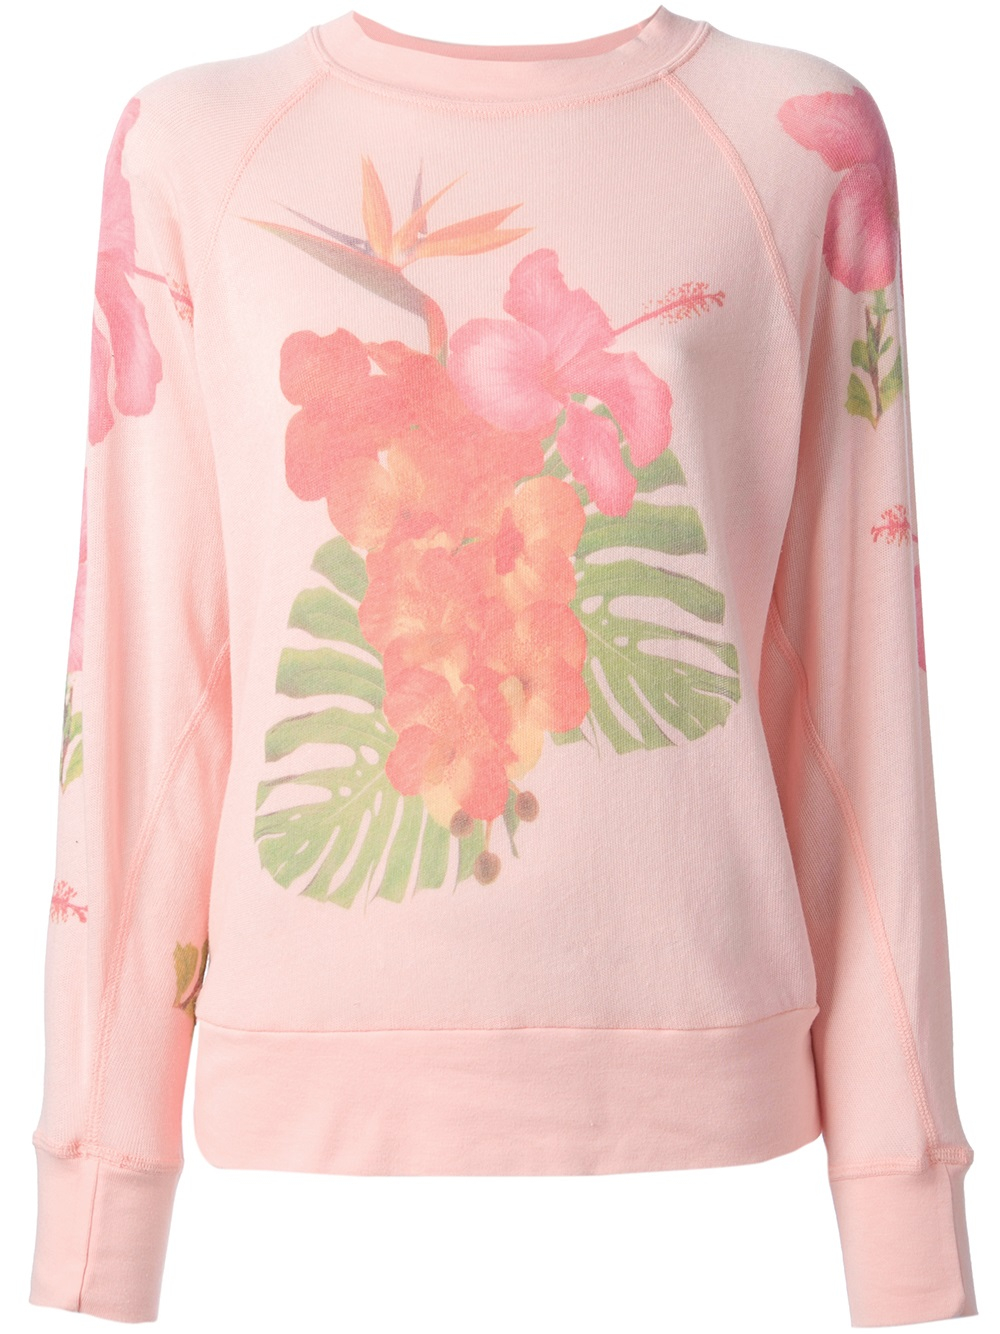 Wildfox white label Floral Print Sweatshirt in Pink | Lyst